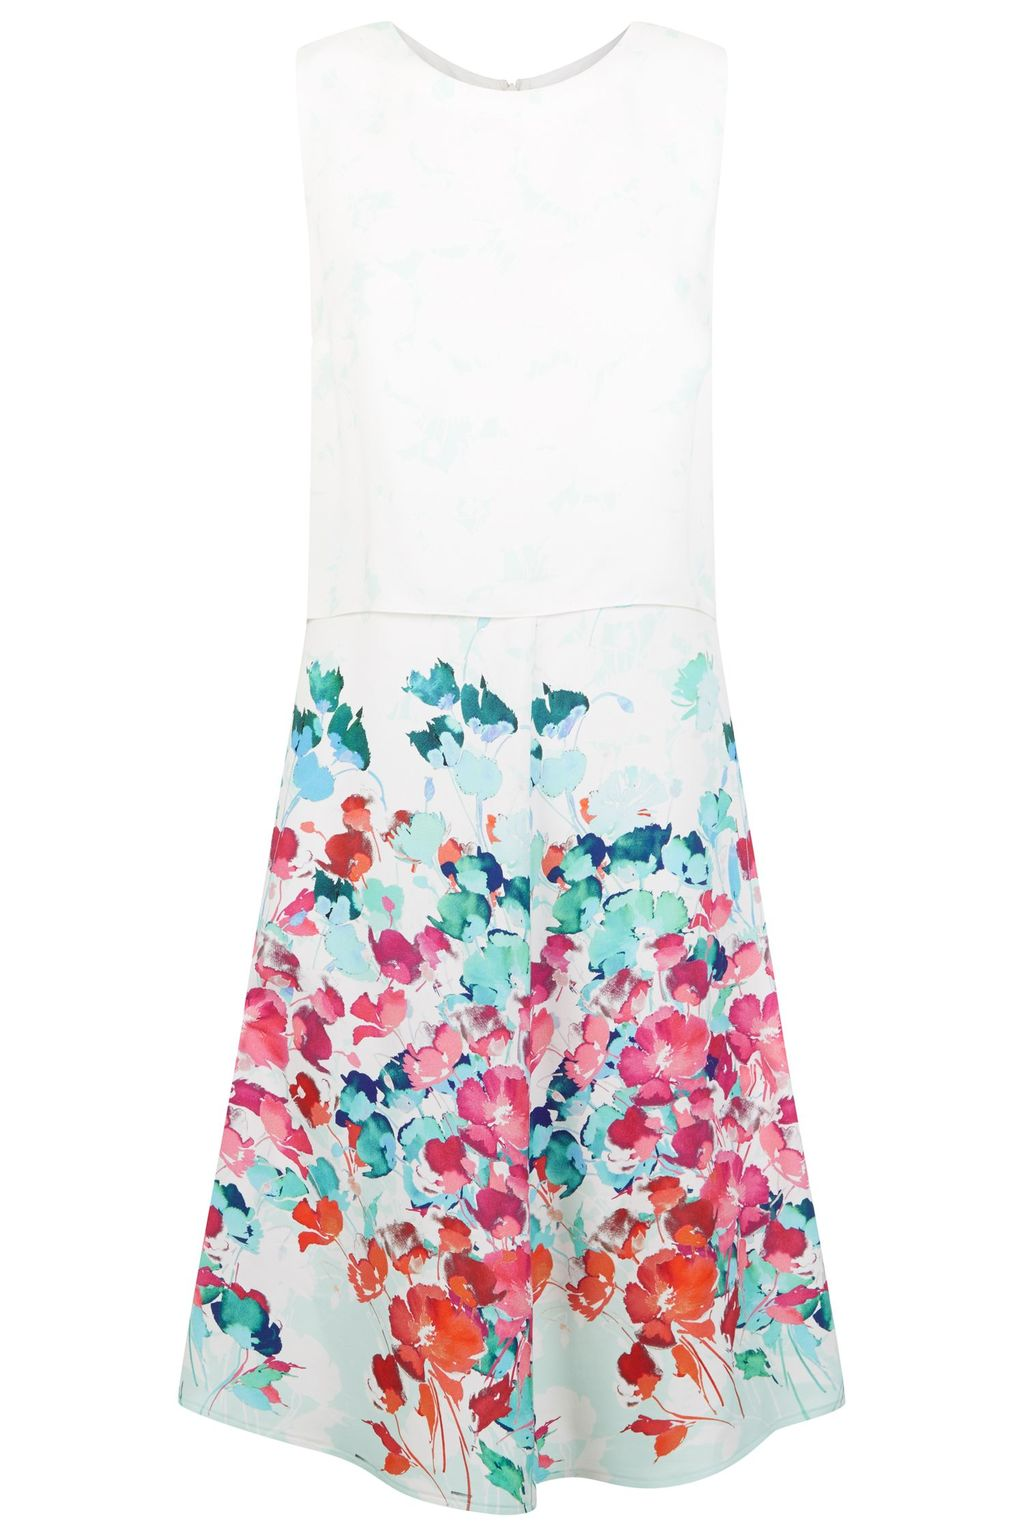 Klee Dress, Multi Coloured - style: shift; sleeve style: sleeveless; predominant colour: white; secondary colour: turquoise; length: on the knee; fit: soft a-line; fibres: viscose/rayon - 100%; occasions: occasion; neckline: crew; sleeve length: sleeveless; pattern type: fabric; pattern size: standard; pattern: patterned/print; texture group: other - light to midweight; multicoloured: multicoloured; season: s/s 2016; wardrobe: event